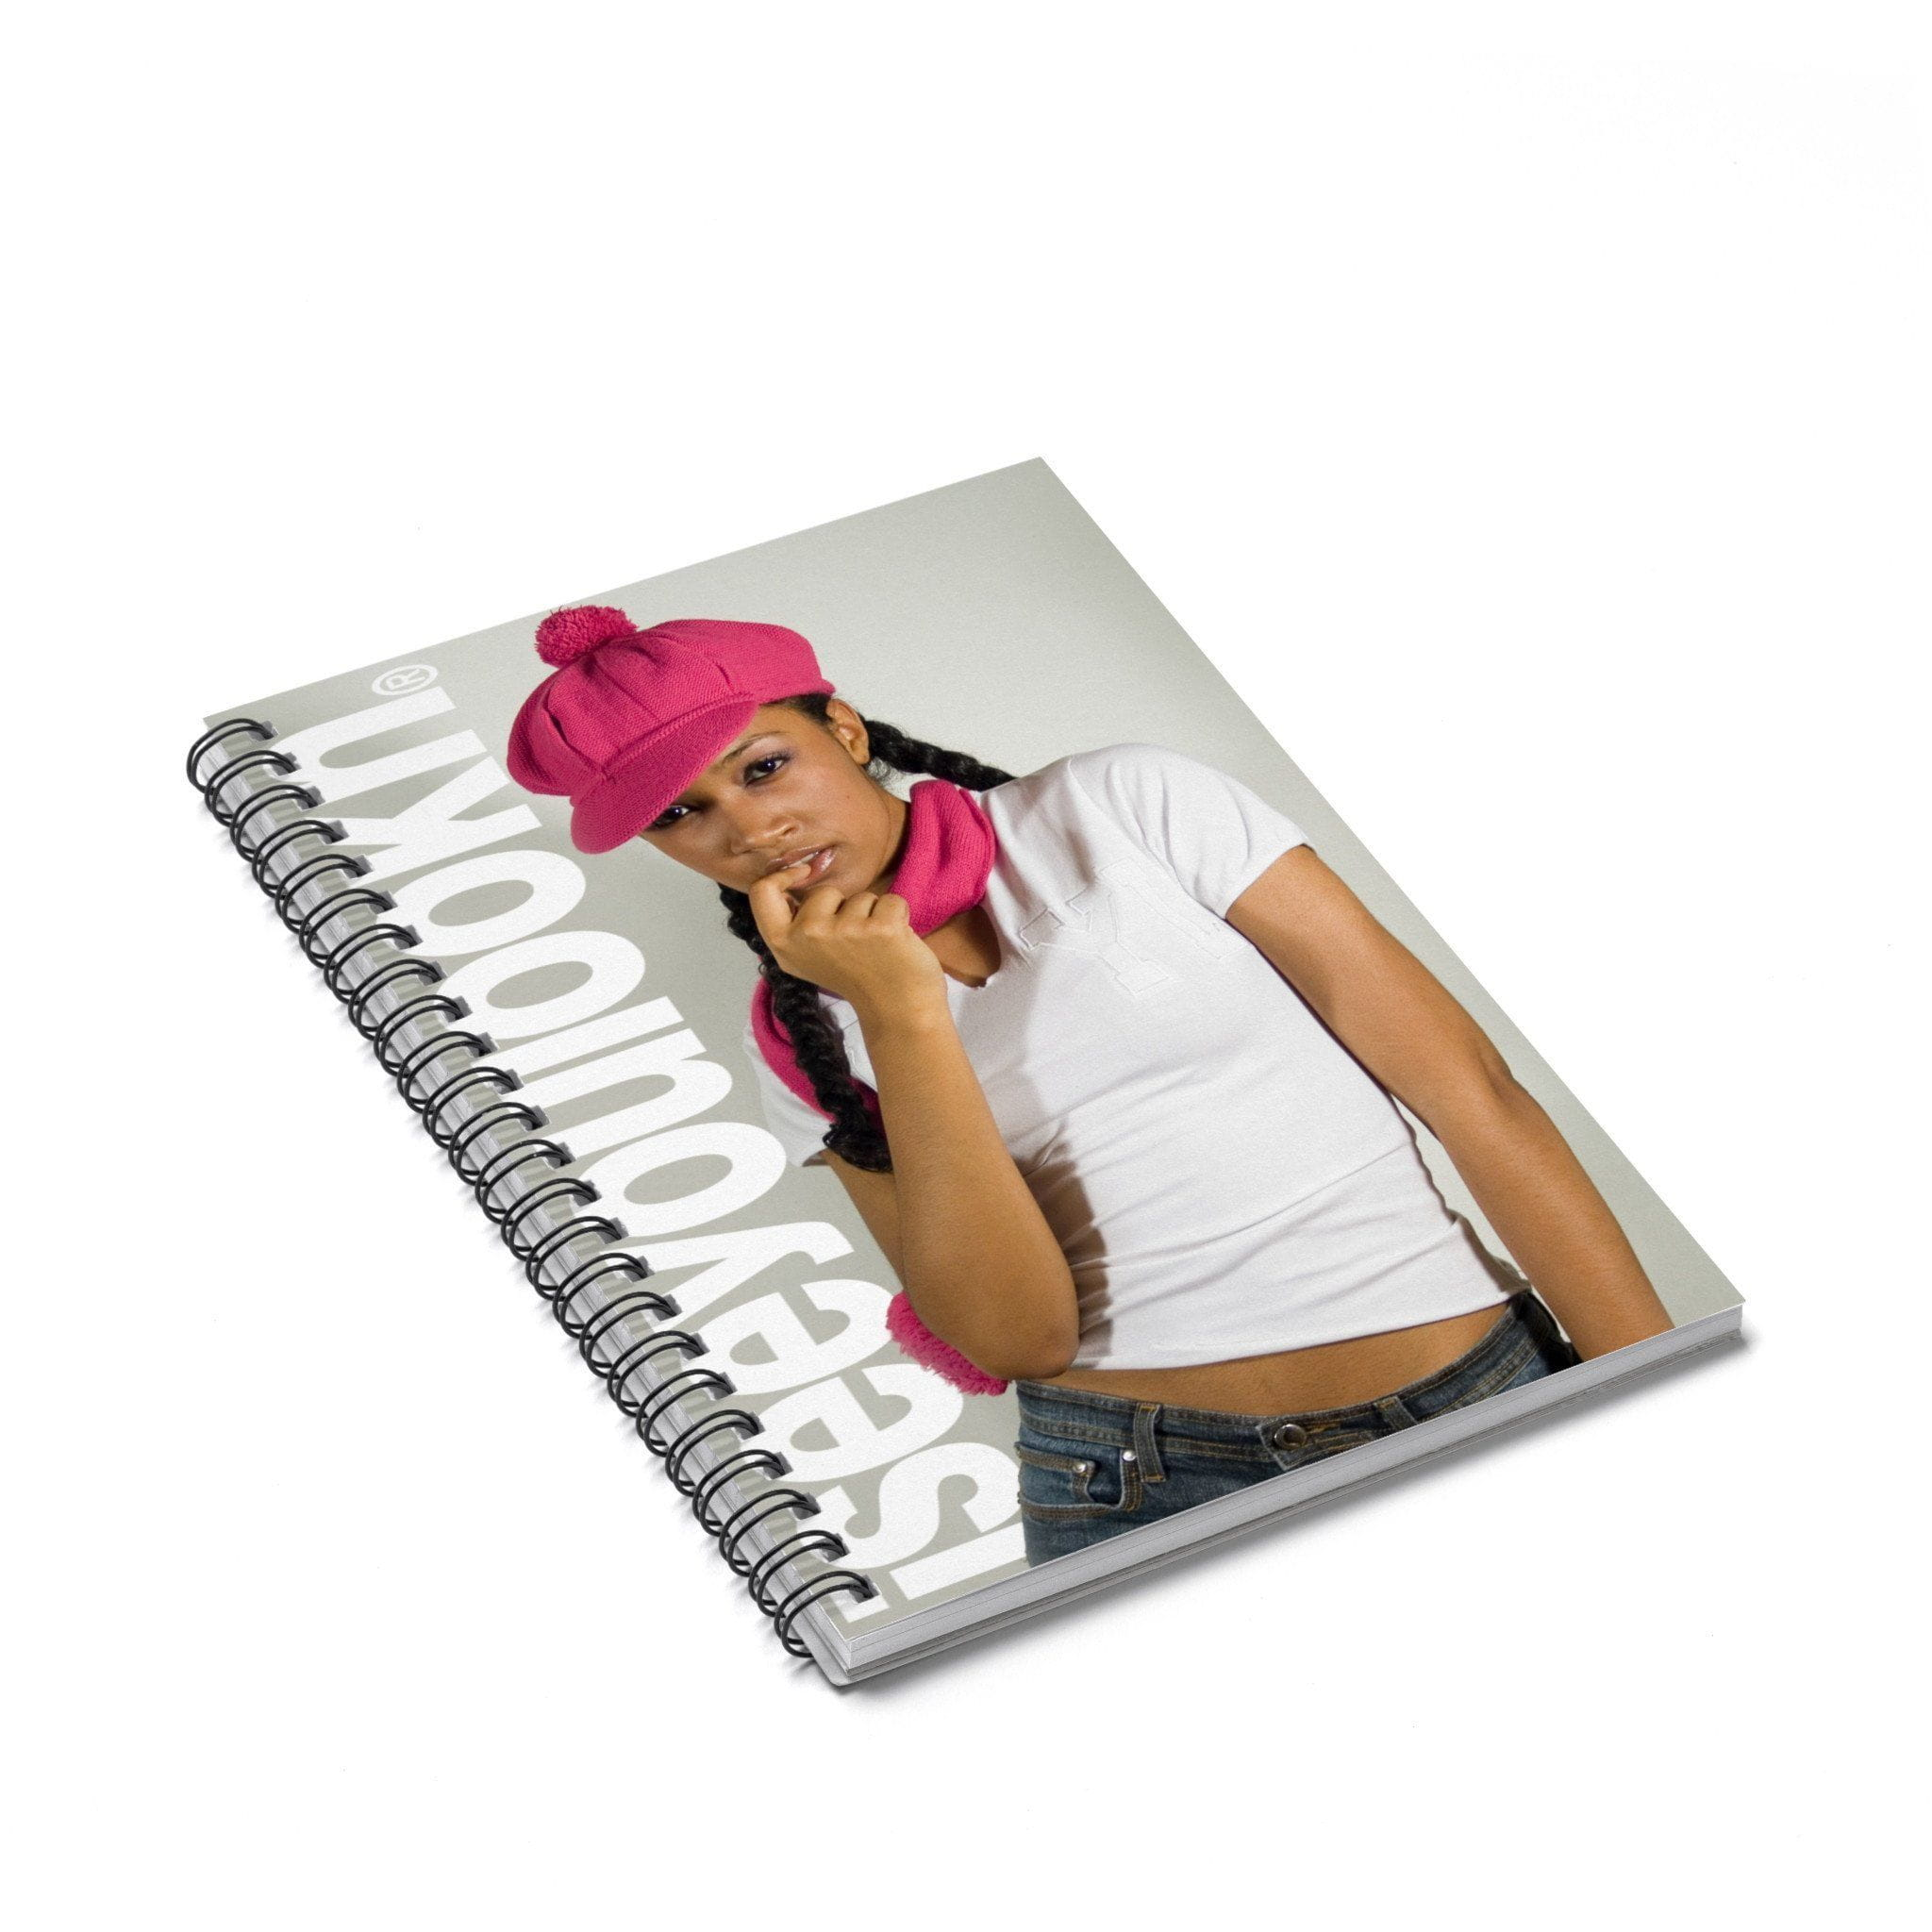 ISEEYOULOOKN Hotness Notebook - Ruled